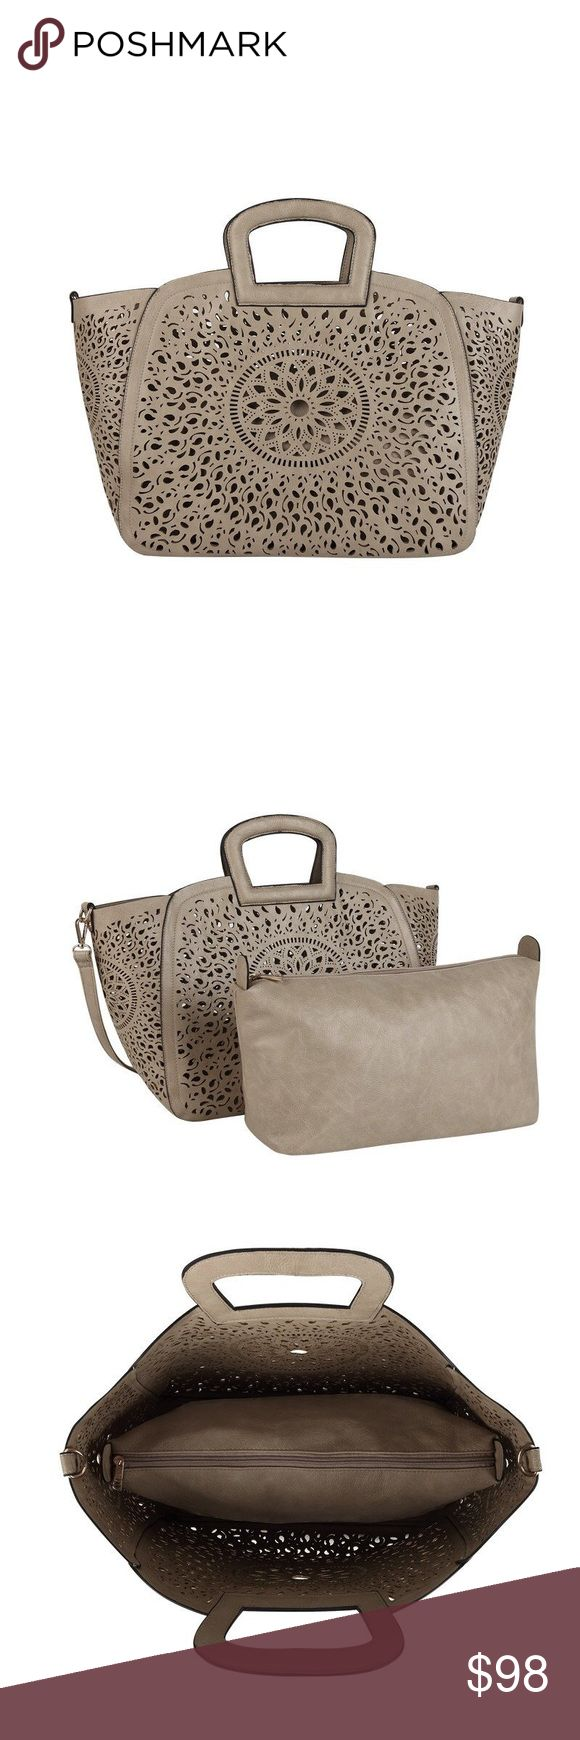 Nancy Laser Cutout Tote Melie Bianco (SOLD OUT in store) Premium Vegan Leather Extra Removable Pouch With Top Zipper Detachable Crossbody Strap Interior Slim Pockets Interior Zipper Pocket Dimensions 19'L x 6'W x 12.5'H Handle Drop 3' Colors: Stone Melie Bianco Bags Totes